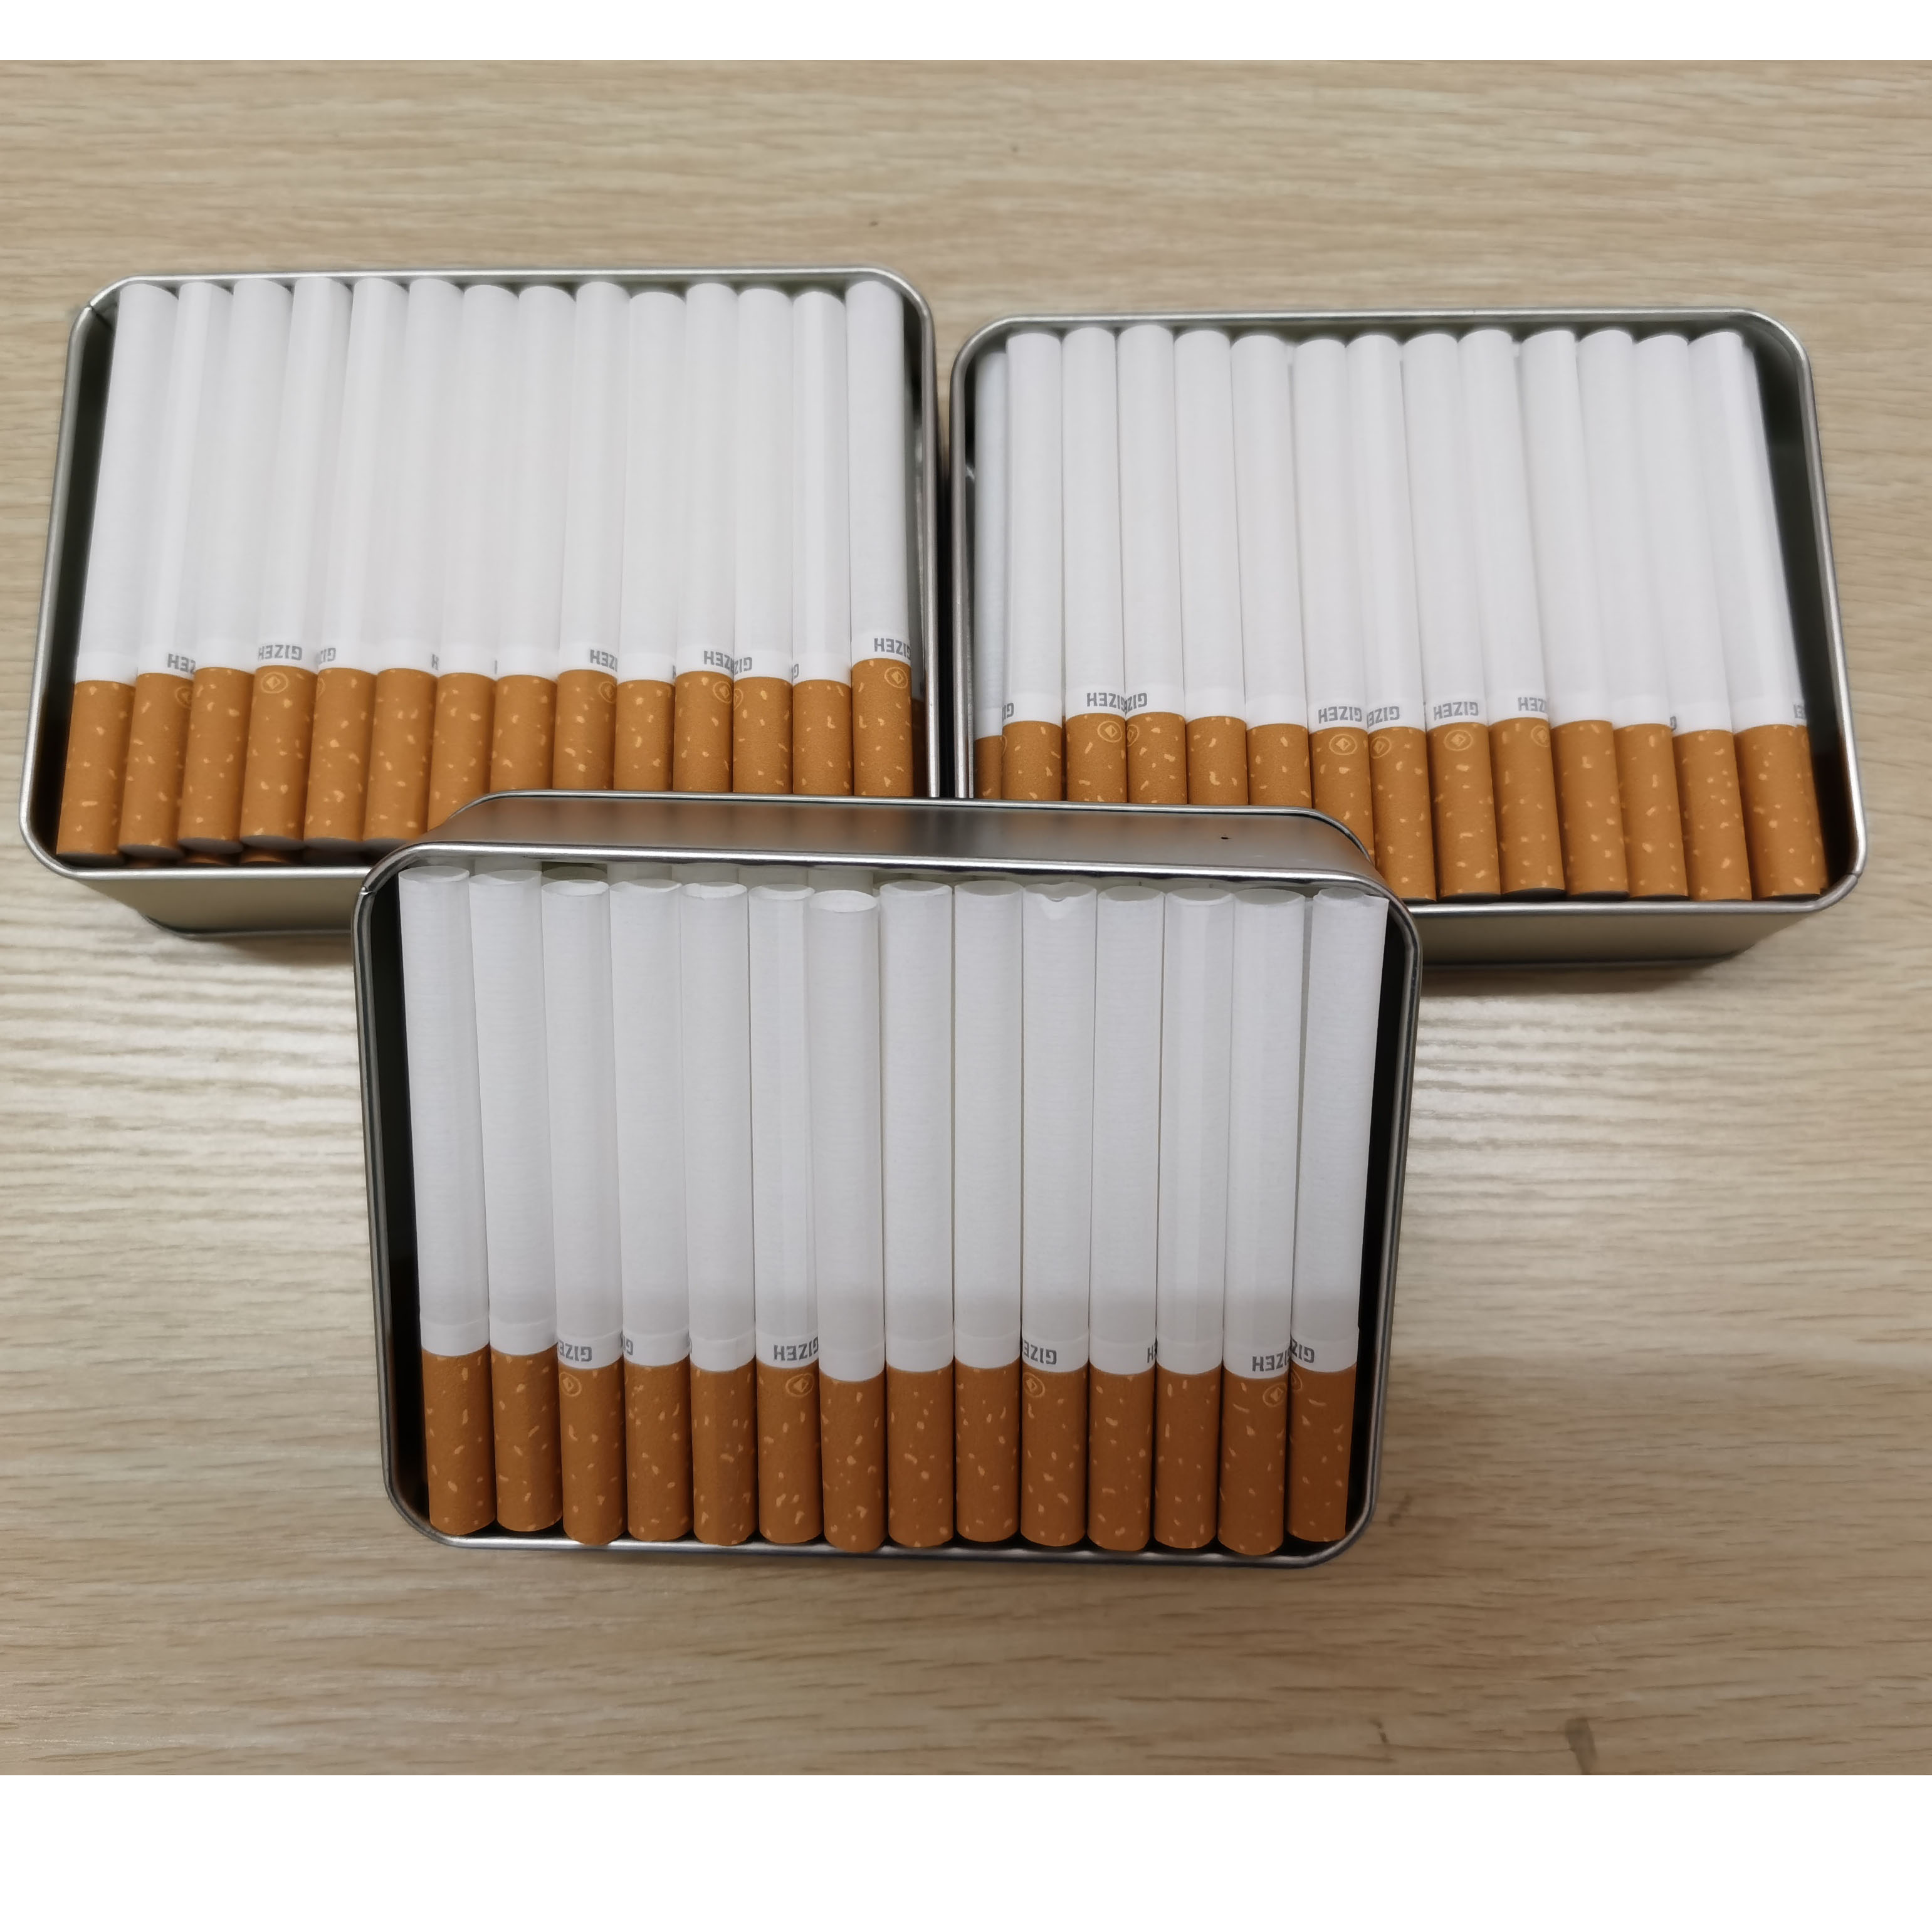 210 PCS Cigarette Accessories Empty Tube OF 3 COMBO